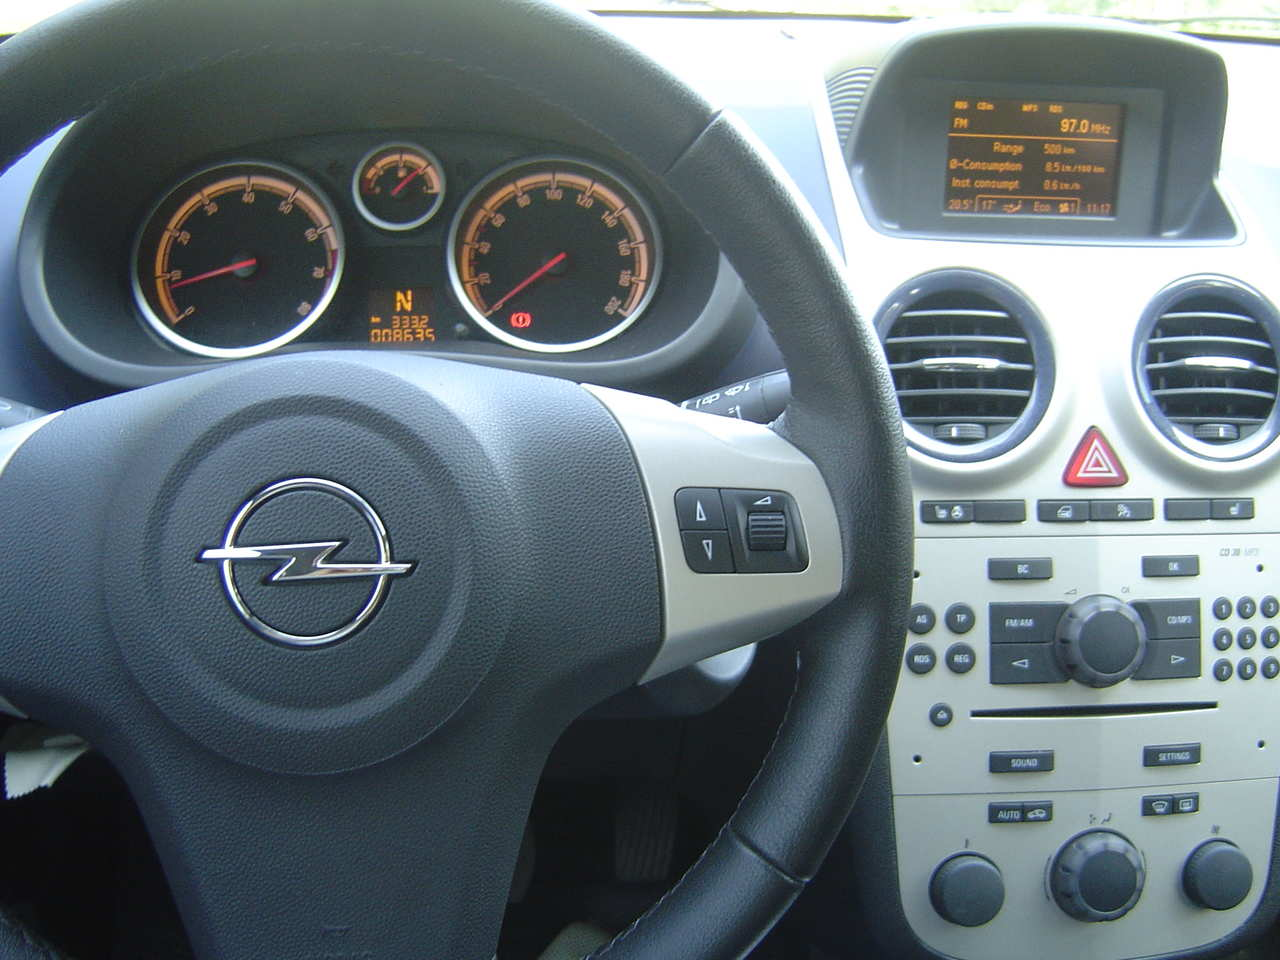 2008 Opel Corsa For Sale 1 2 Gasoline Ff Automatic For